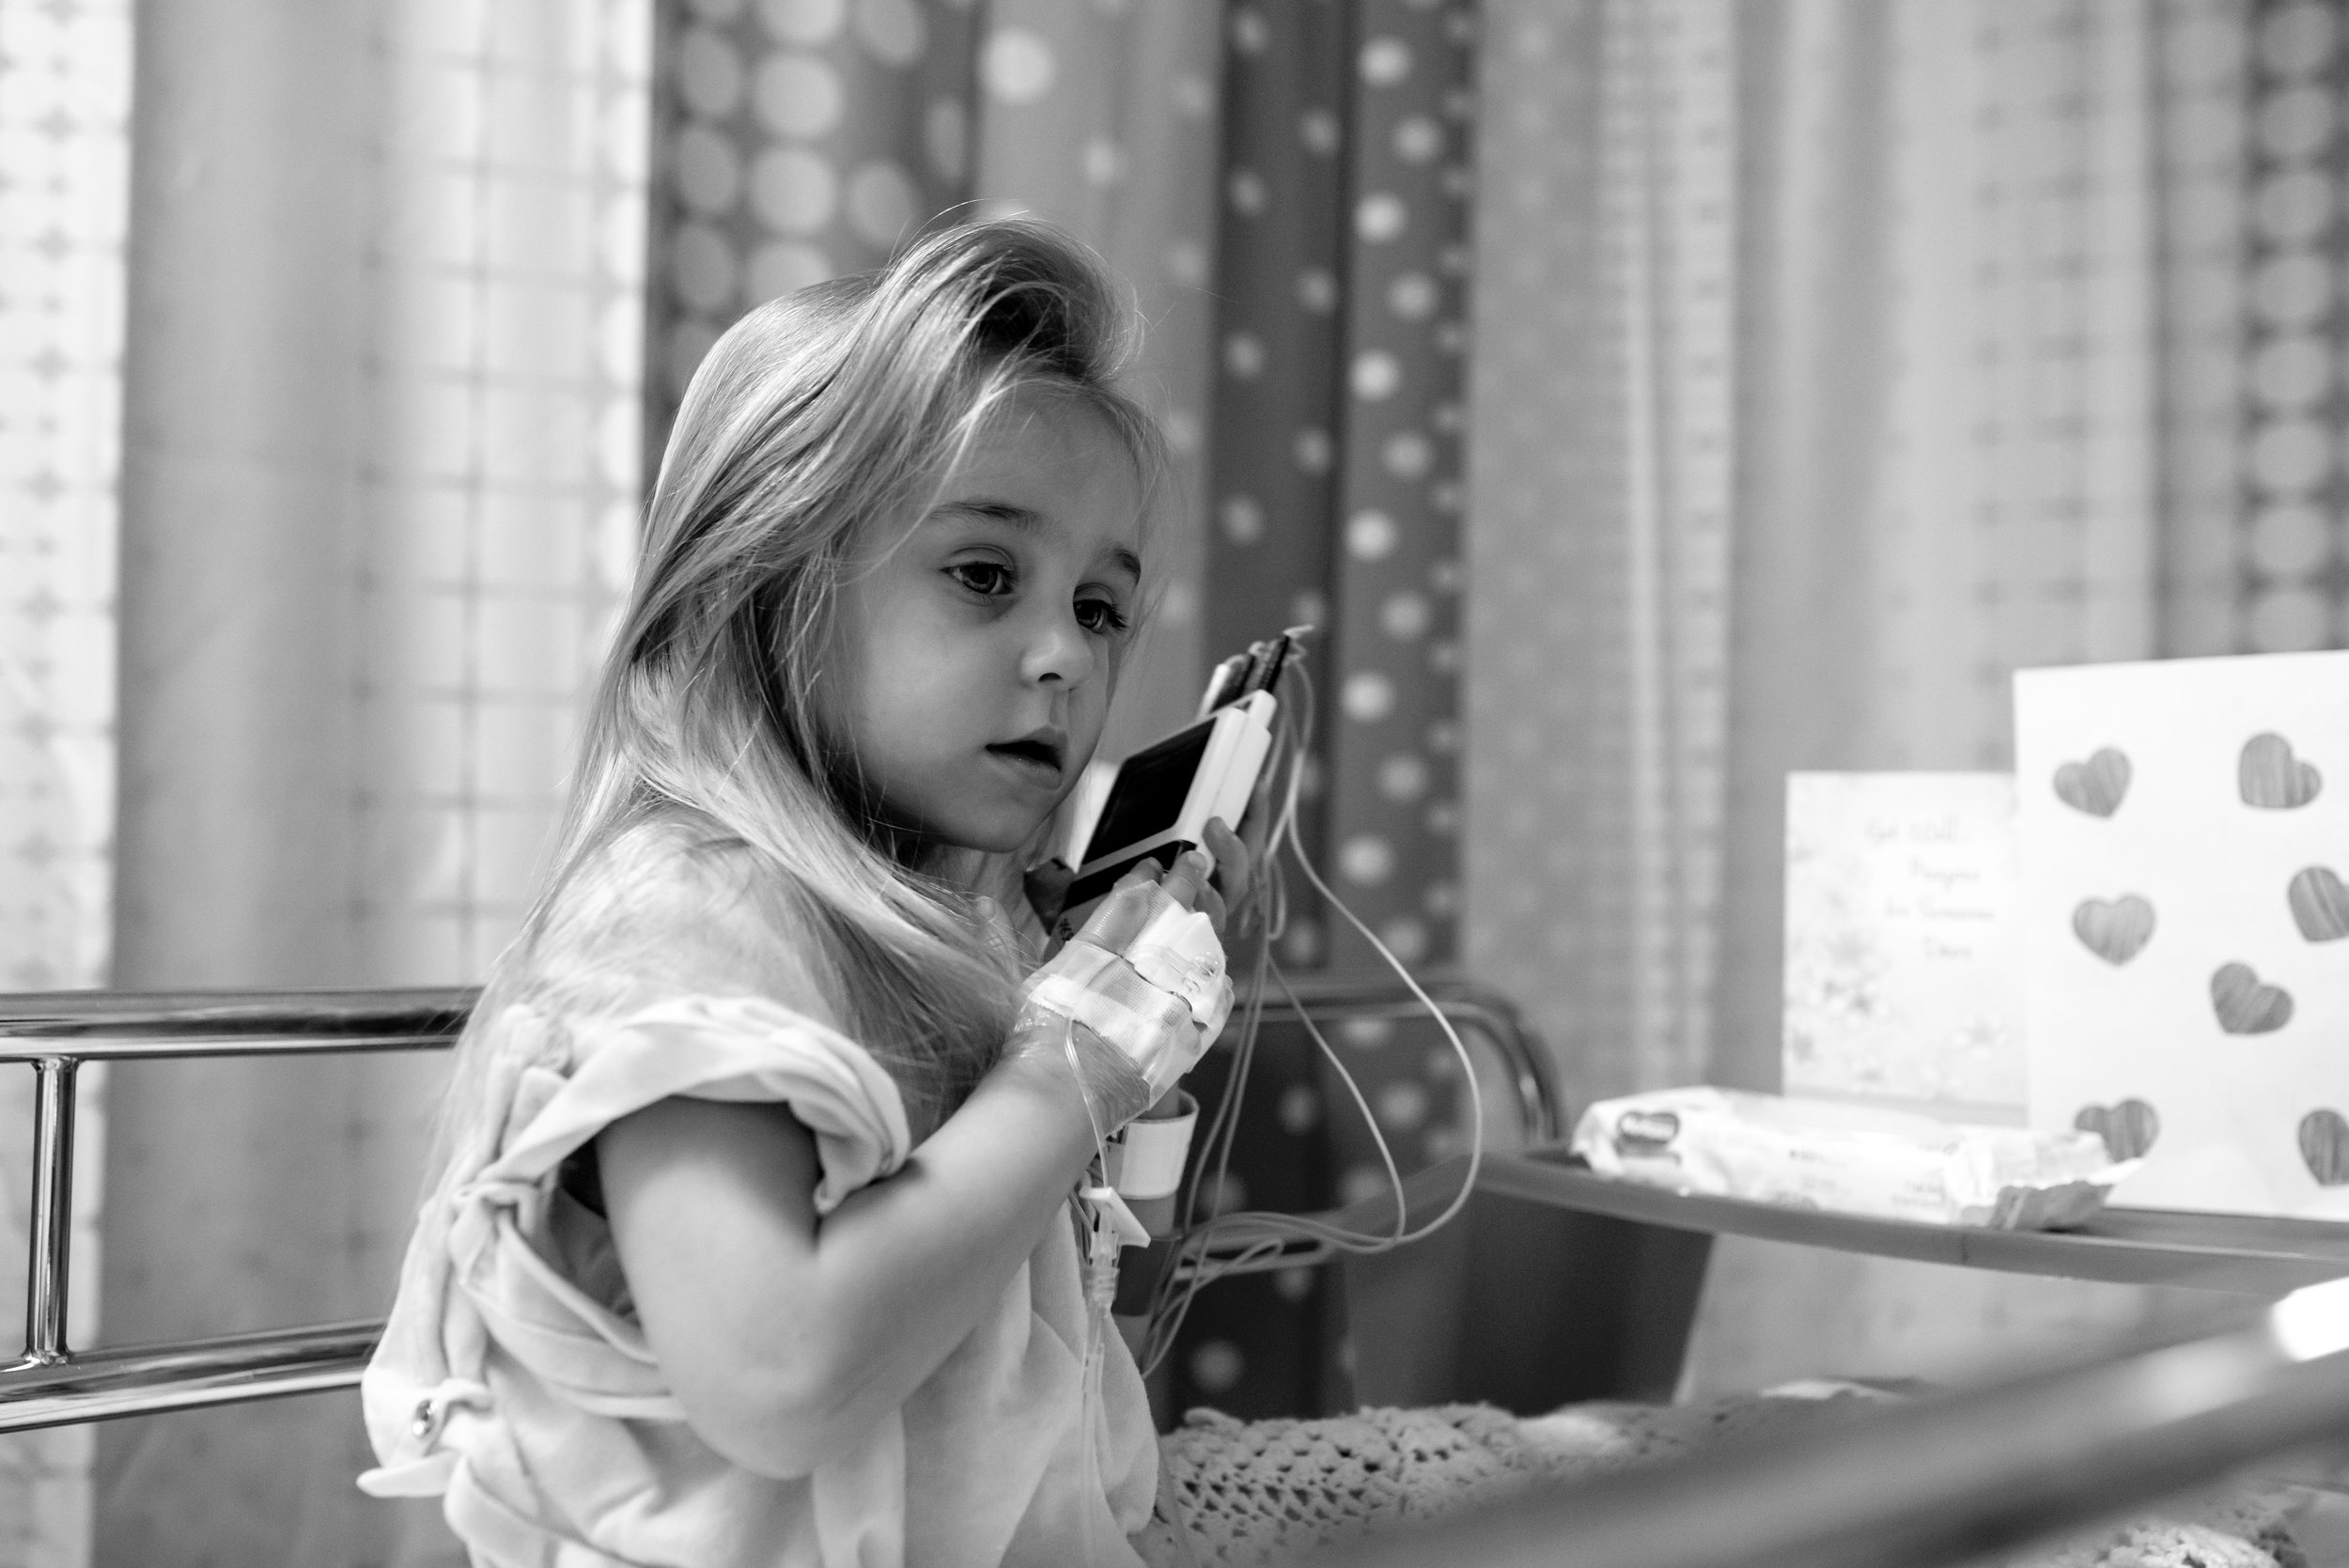 Girl plays with EKG monitor after heart procedure